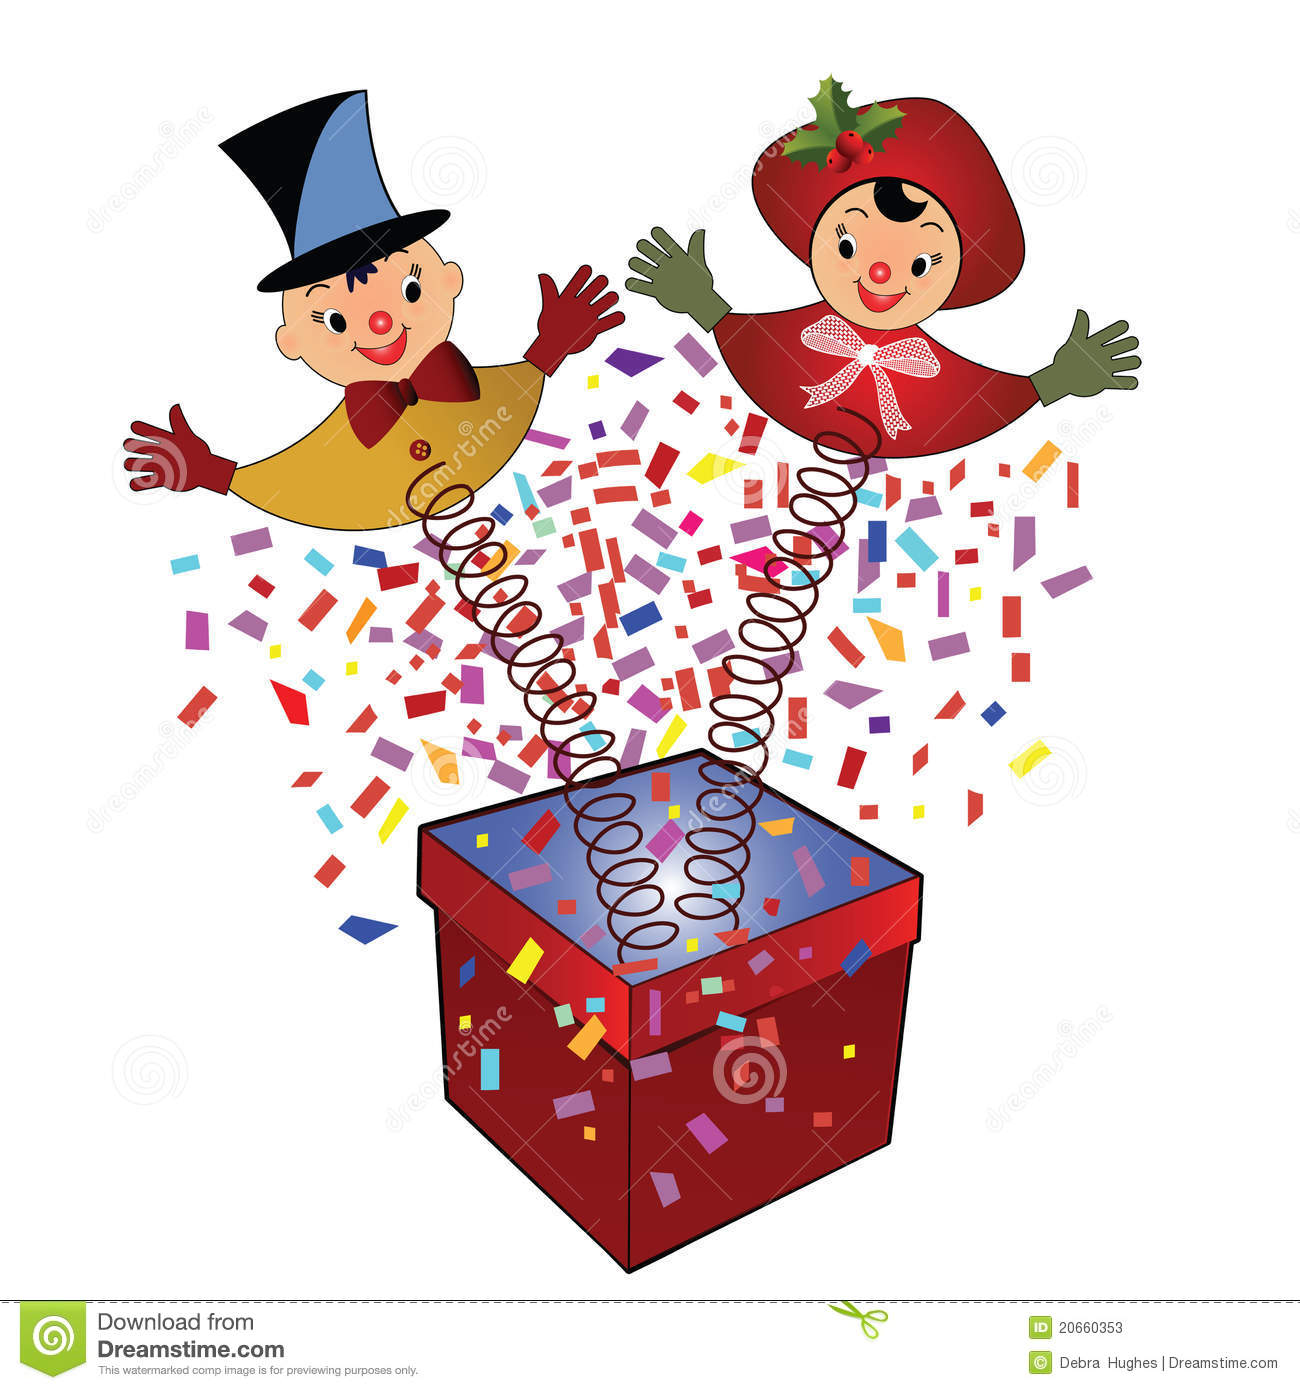 Jack-in-the-Box - Toy Stock Photos - Image: 20660353